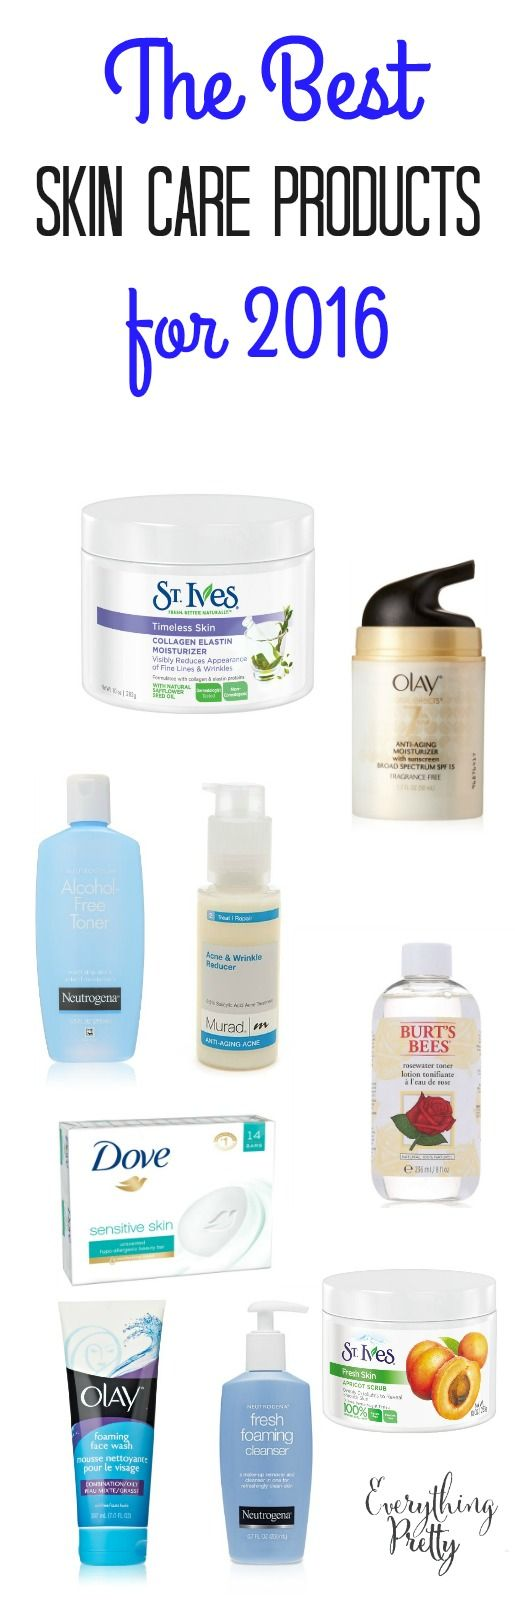 The Best Skin Care Products For 2016 | Everything Pretty via www.yourbeautyblog.com